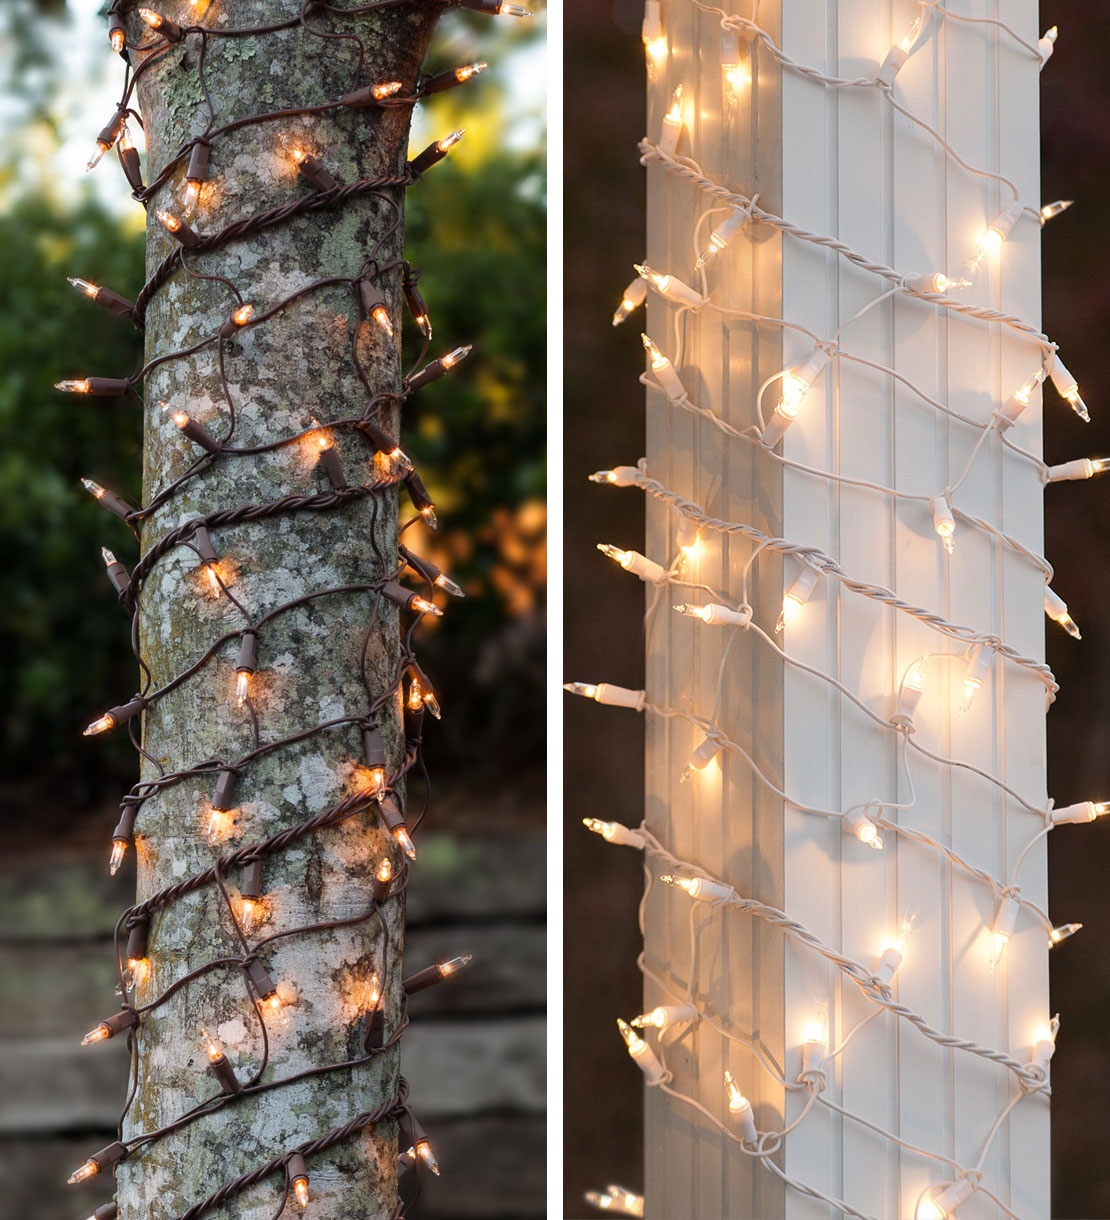 Tree Trunk Wrap and Column Wrap With Incandescent Lights